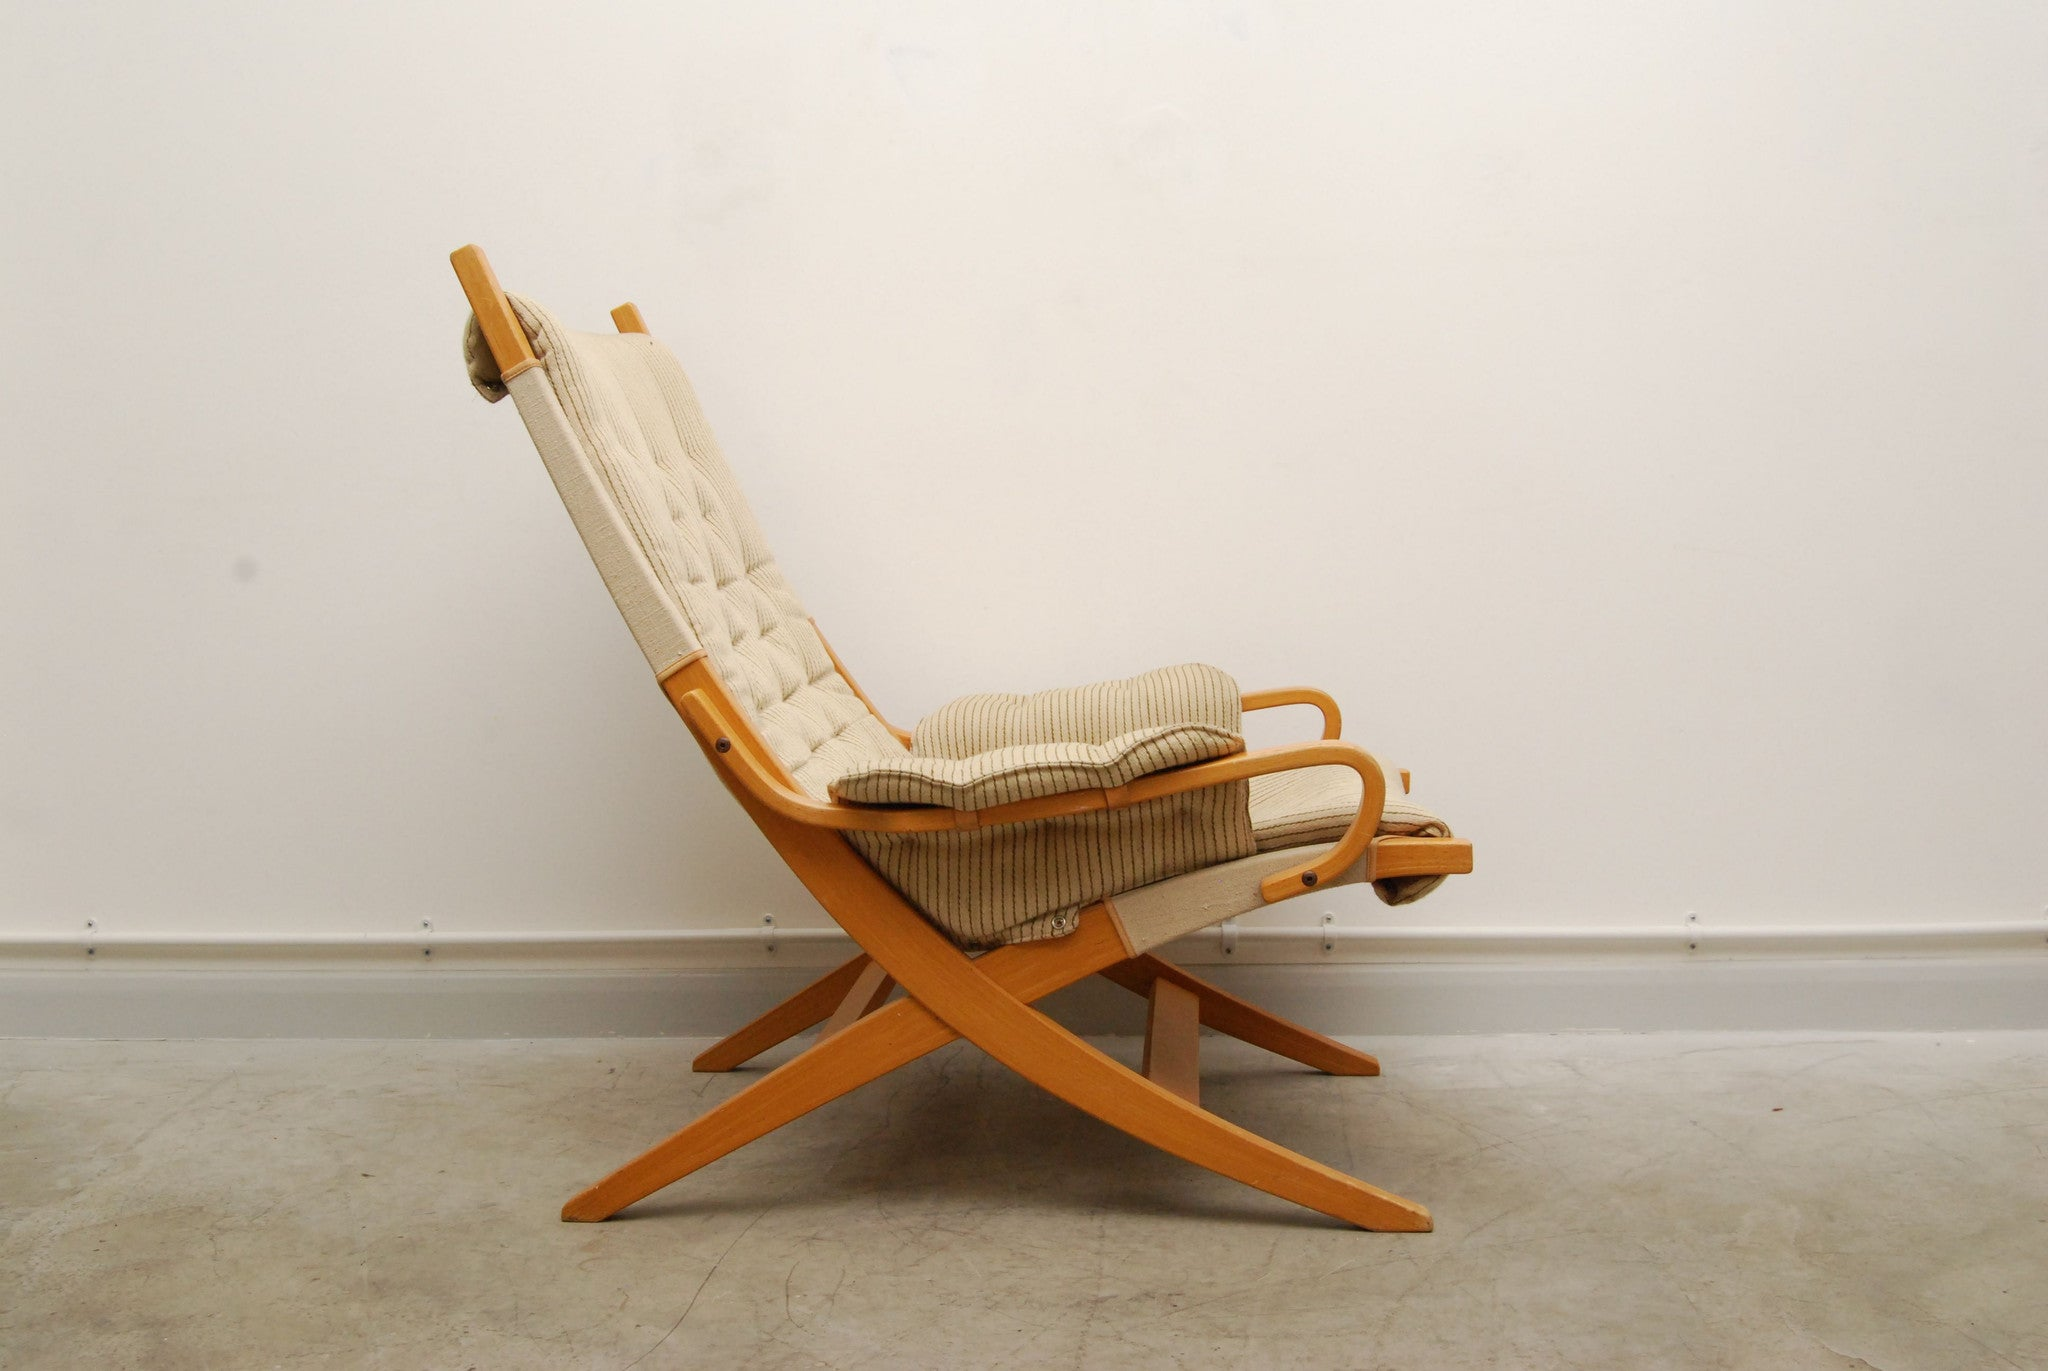 Chase & Sorensen Swedish/Finnish lounge chair